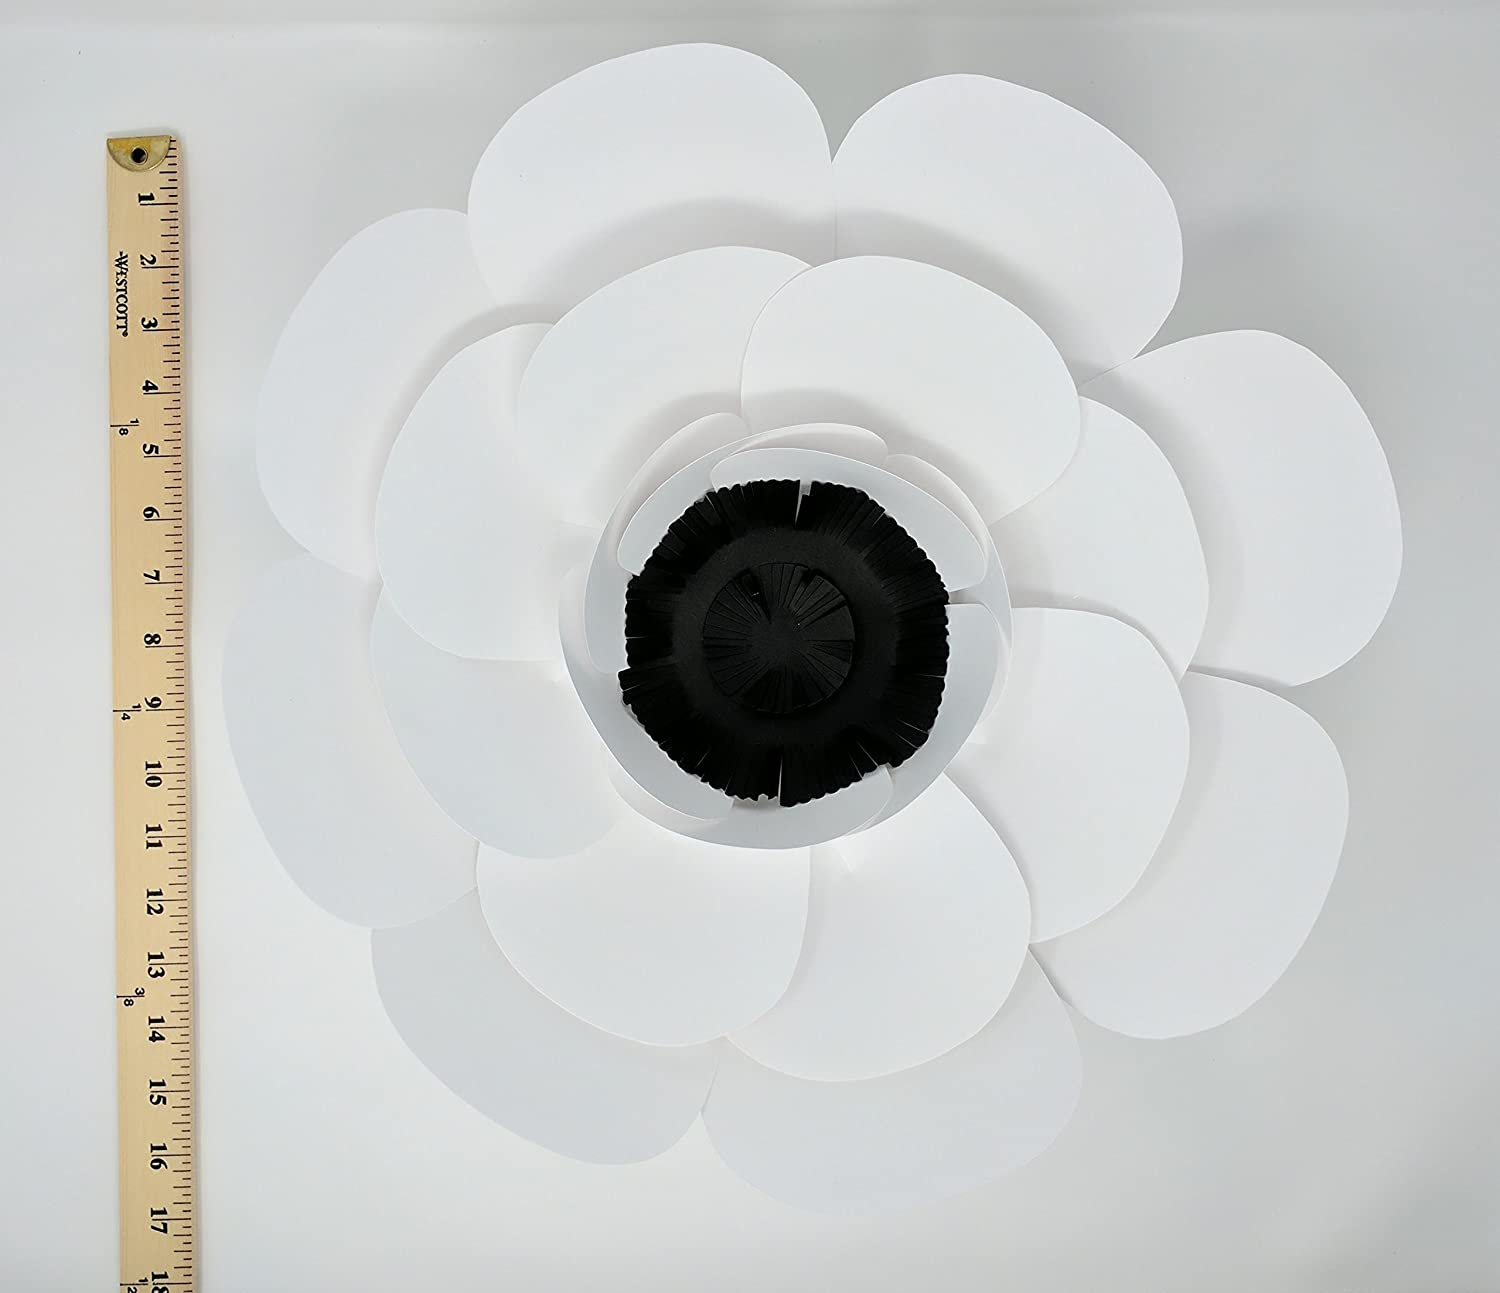 Multiple Shape of Flowers for Backdrops - includes 12 Paper Flowers and 12 Paper Leaves - Fully Assembled